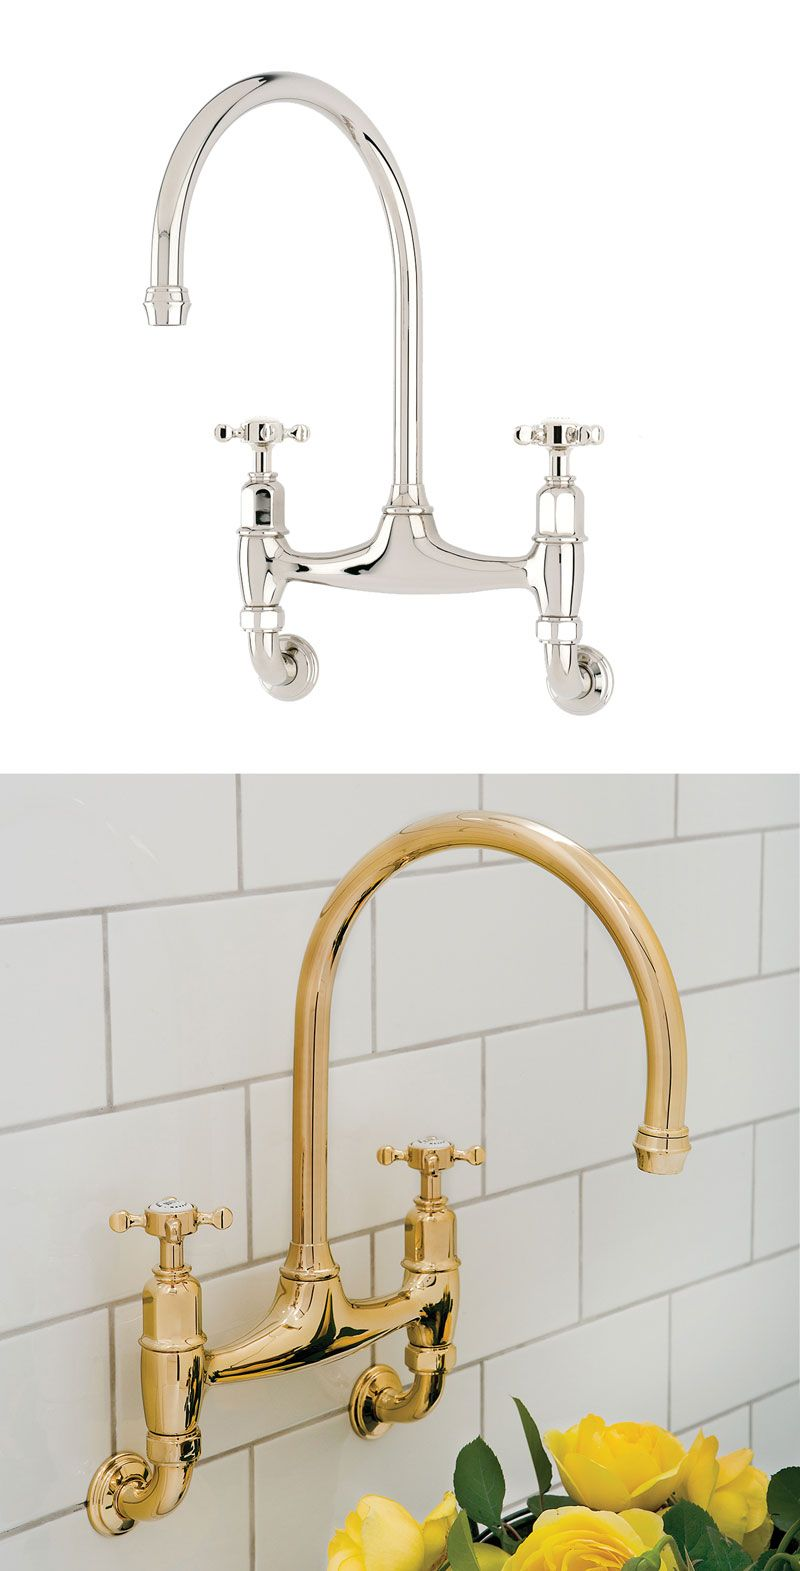 Perrin Rowe Ionian Wall Mounted Kitchen Tap In Chrome And Gold With Crosshead Handles 4182 Kitchen Taps Wall Mounted Taps Butler Sink